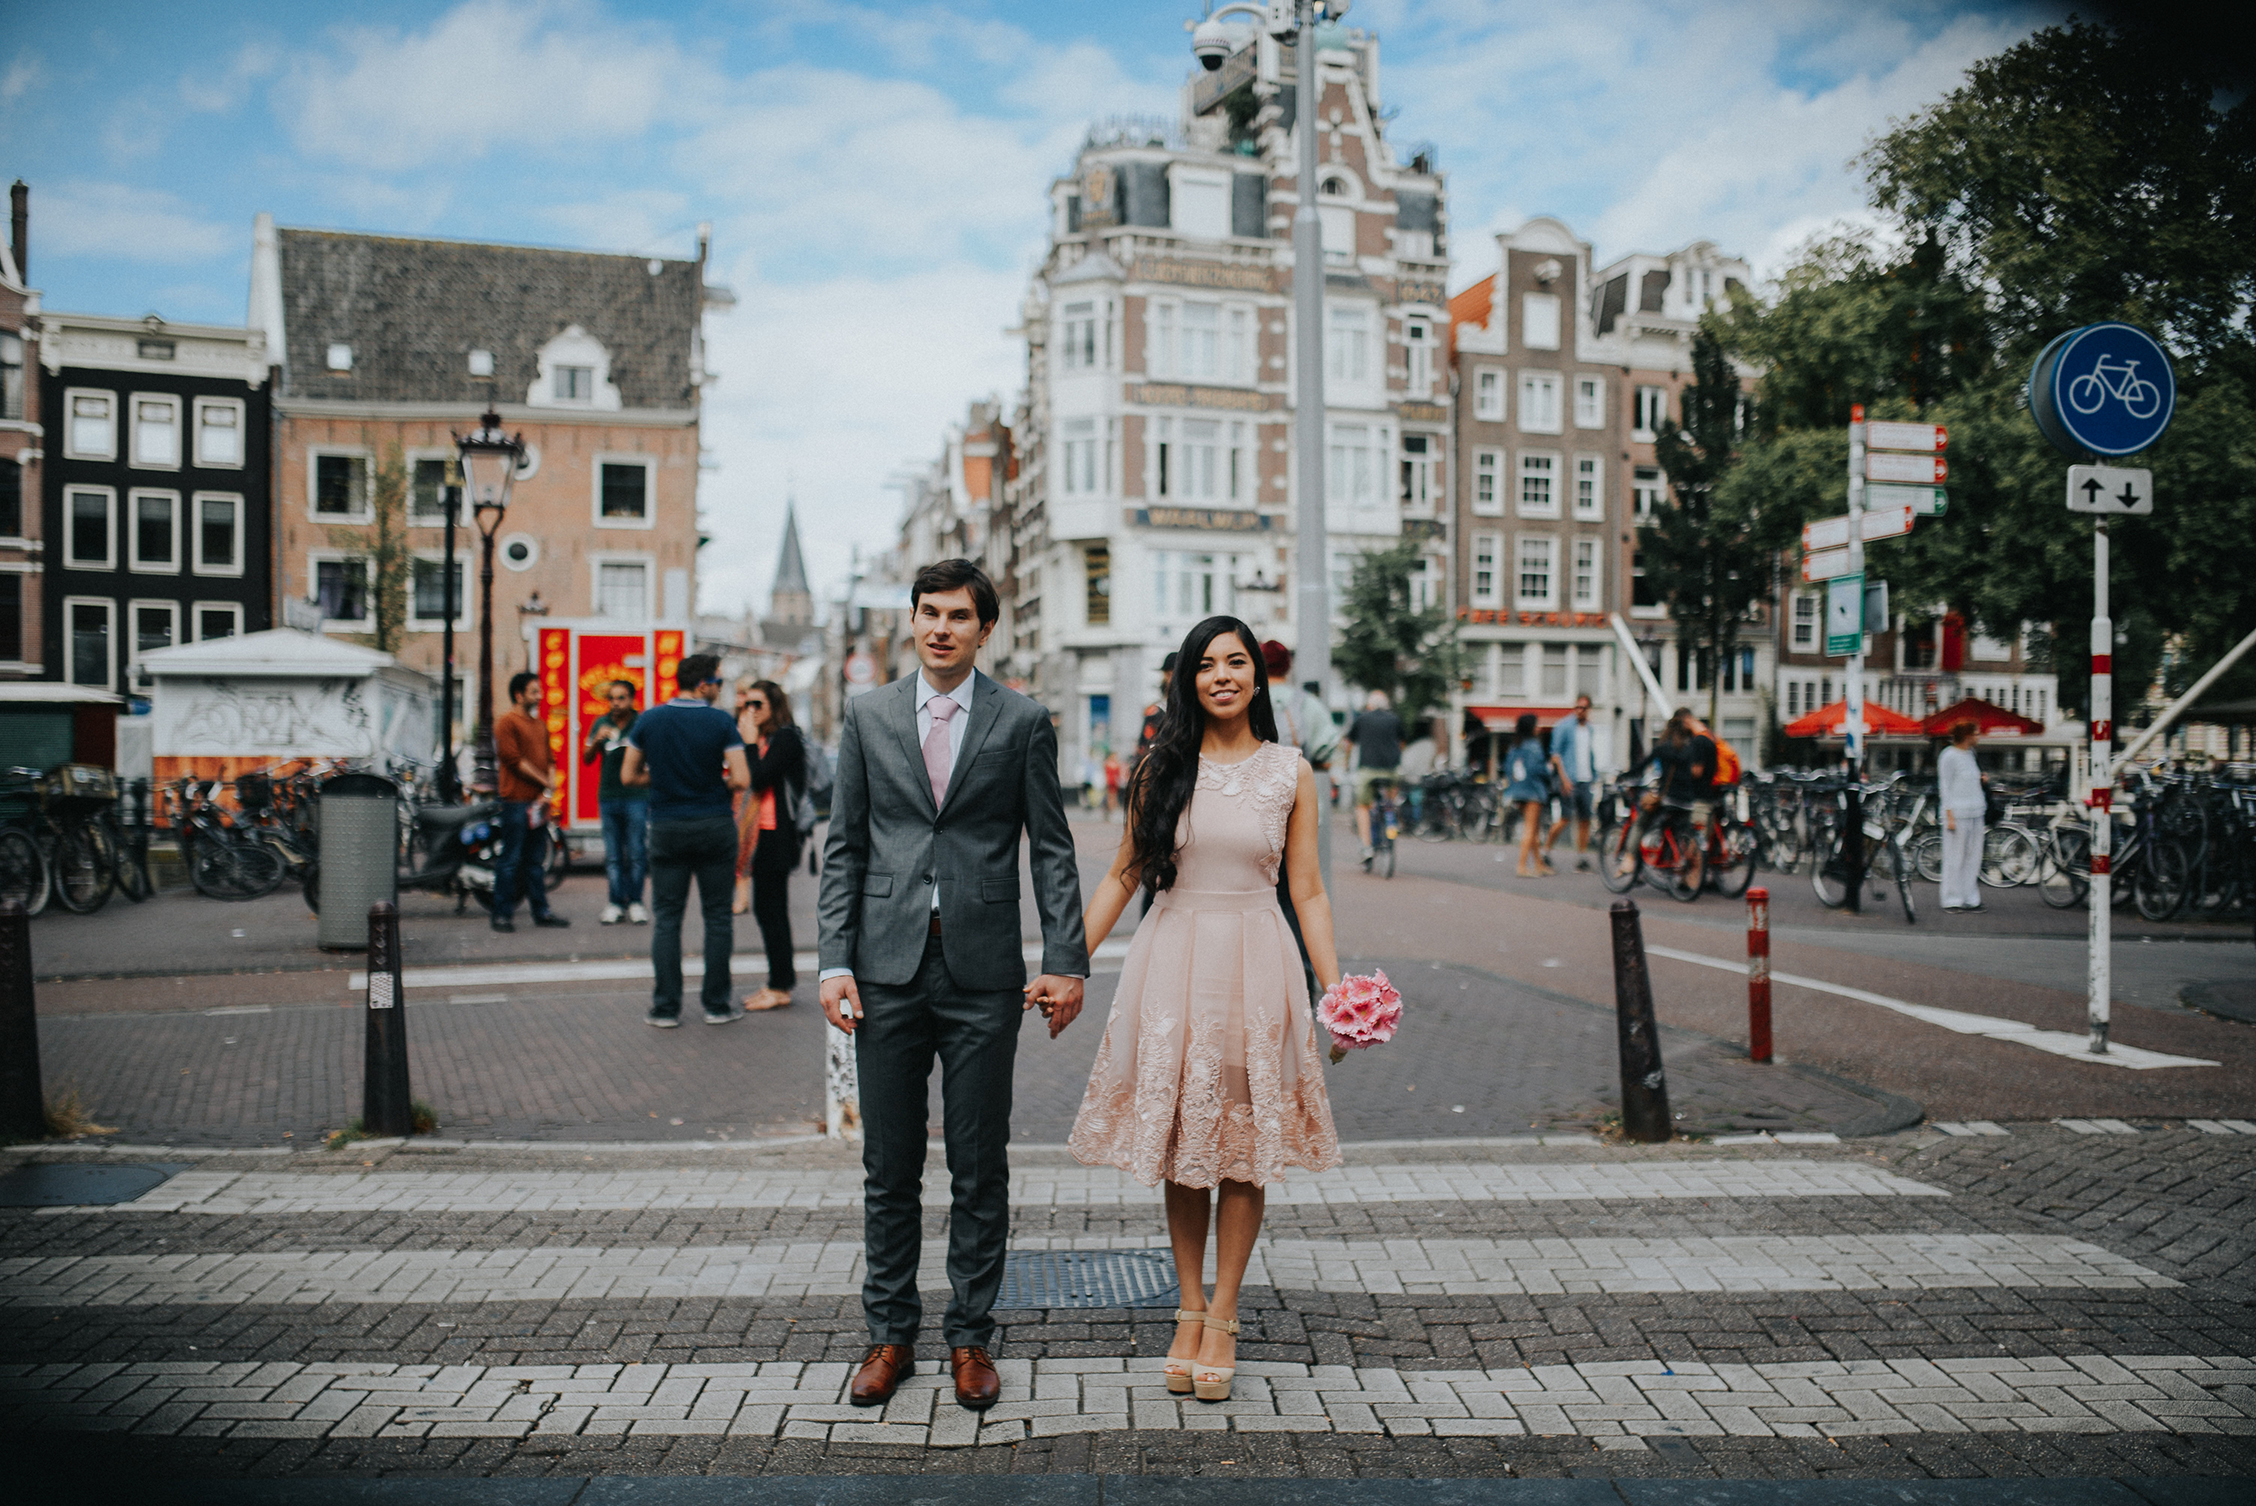 Amsterdam_Pre-wedding_Photography-9